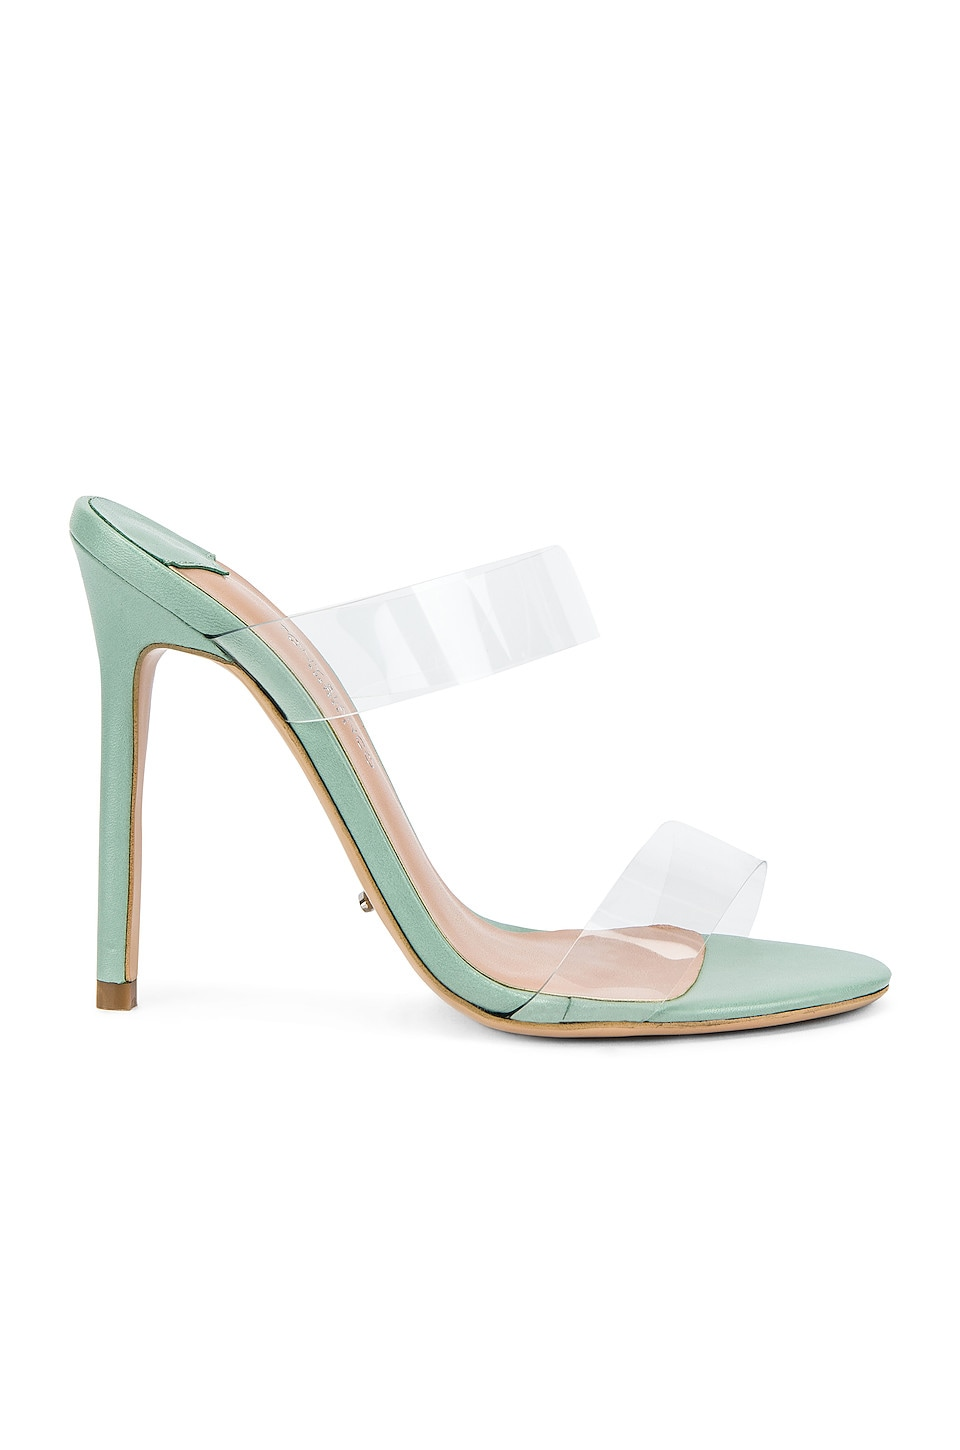 Tony Bianco Kade Mule in Clear Vynalite & Mint